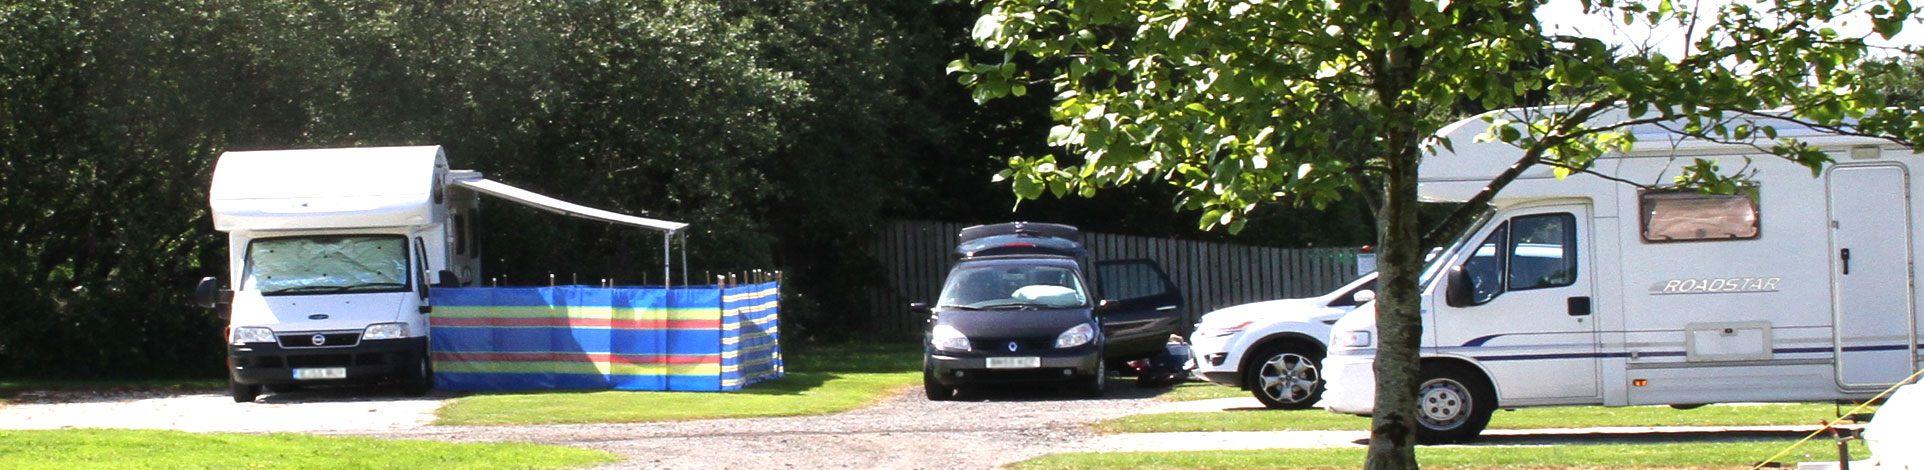 Holiday park for motorhomes